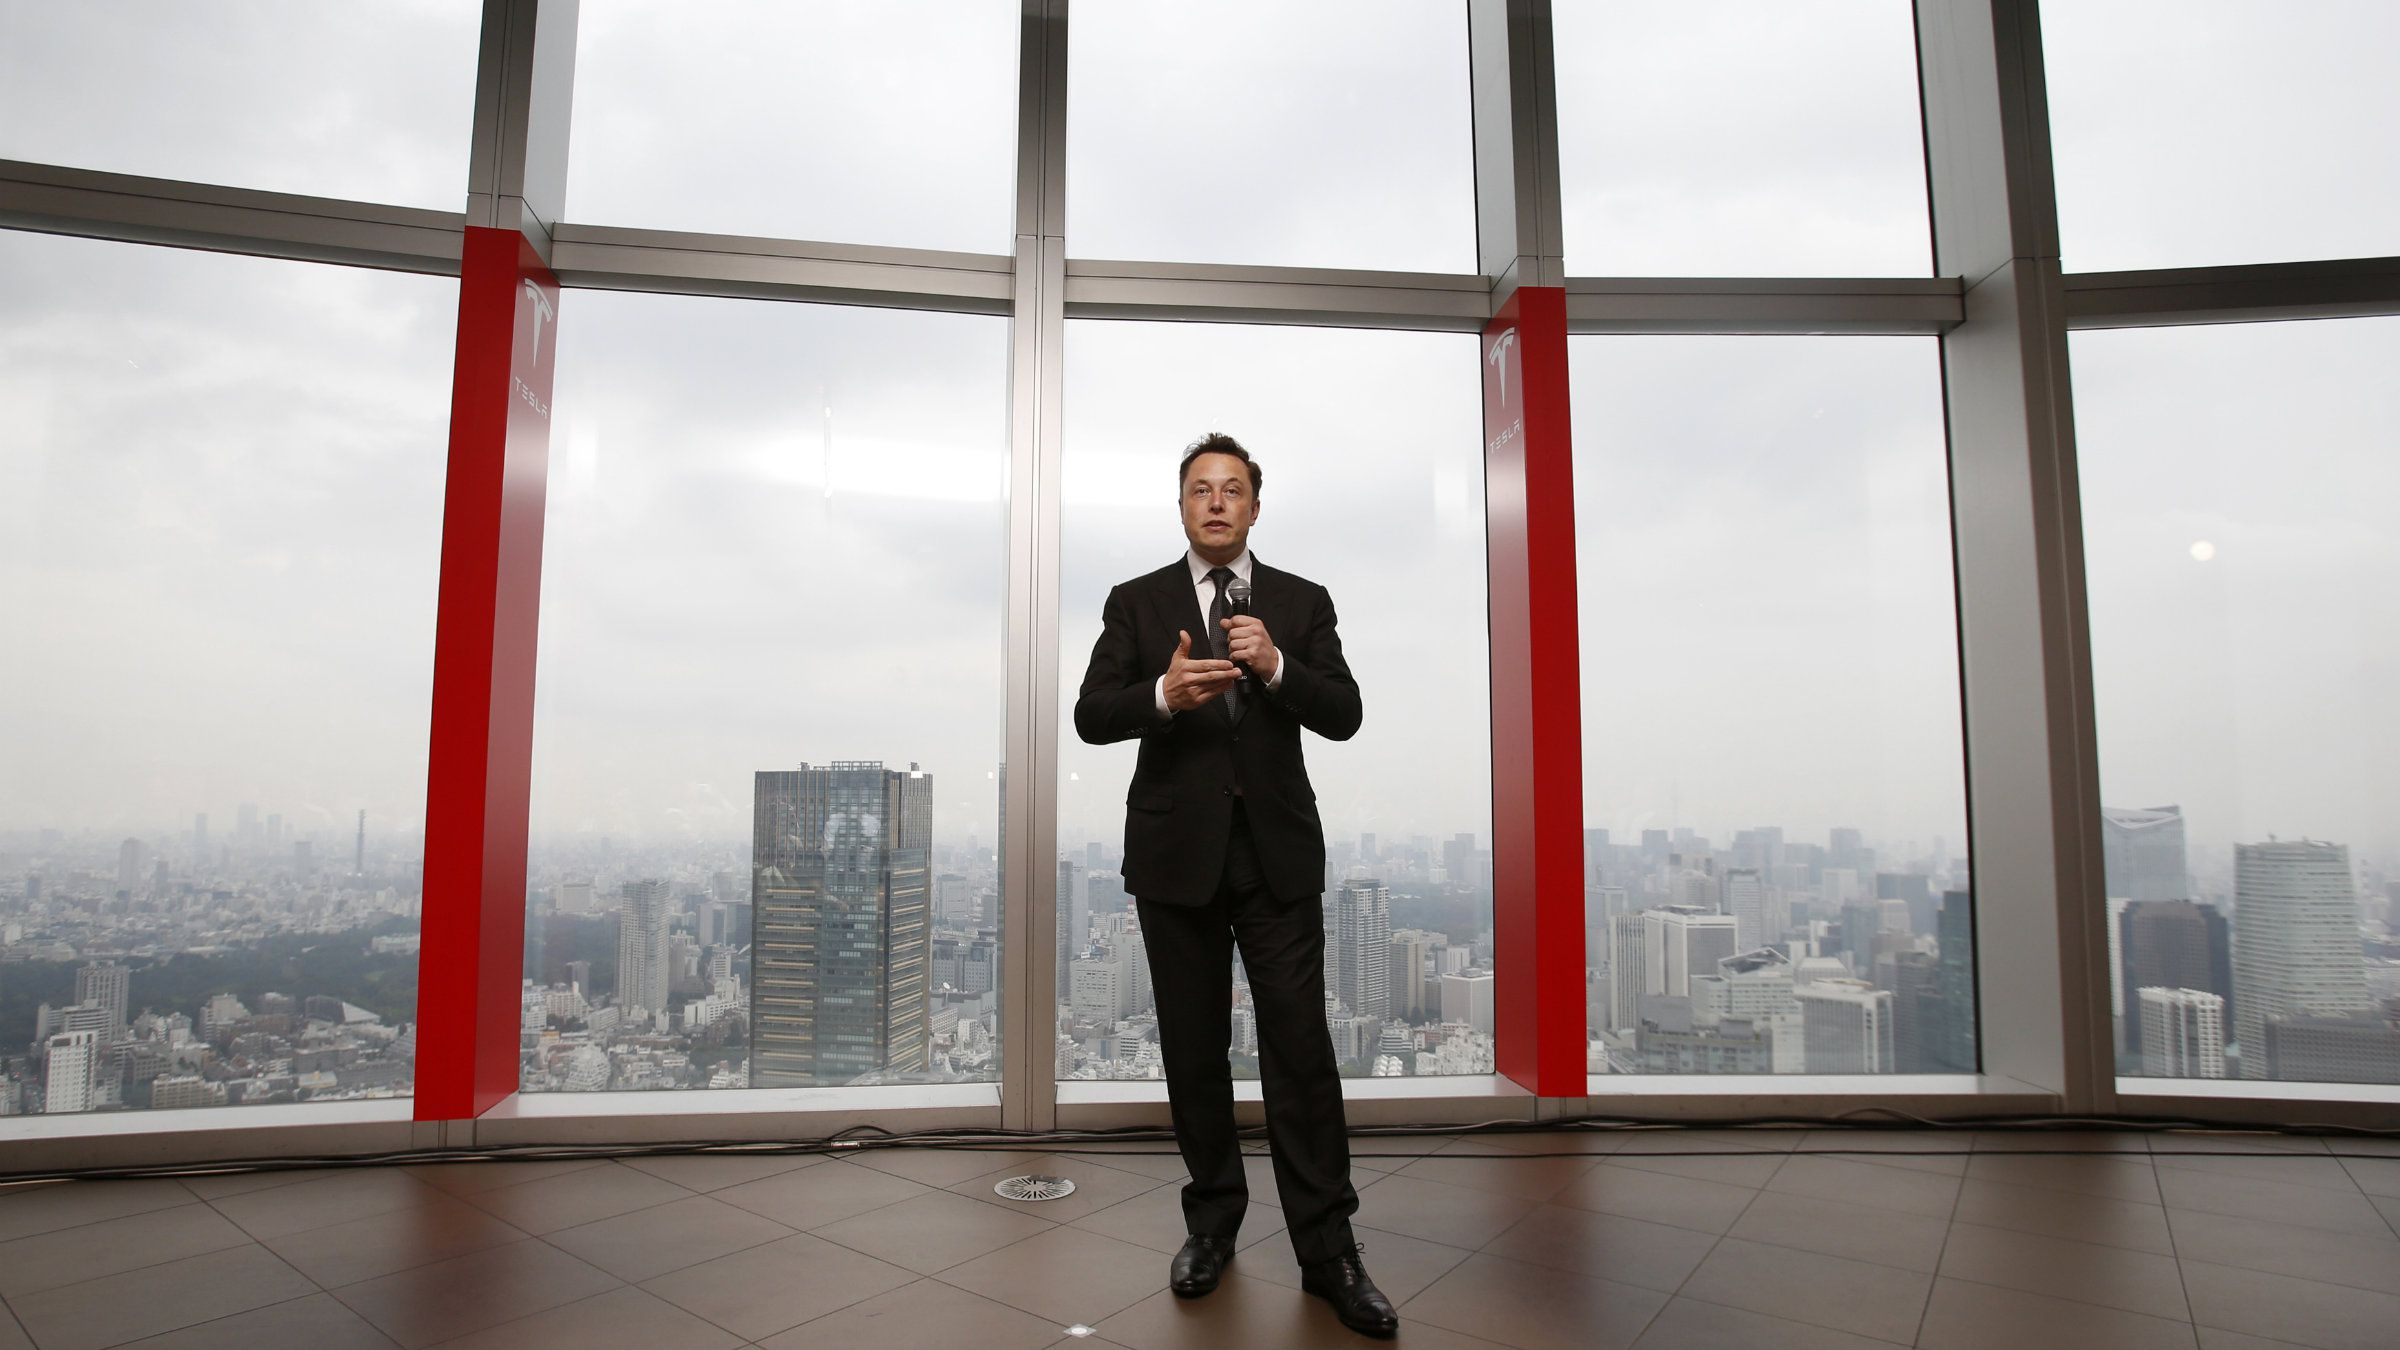 Tesla Motors Inc Chief Executive Elon Musk speaks during a news conference in Tokyo September 8, 2014